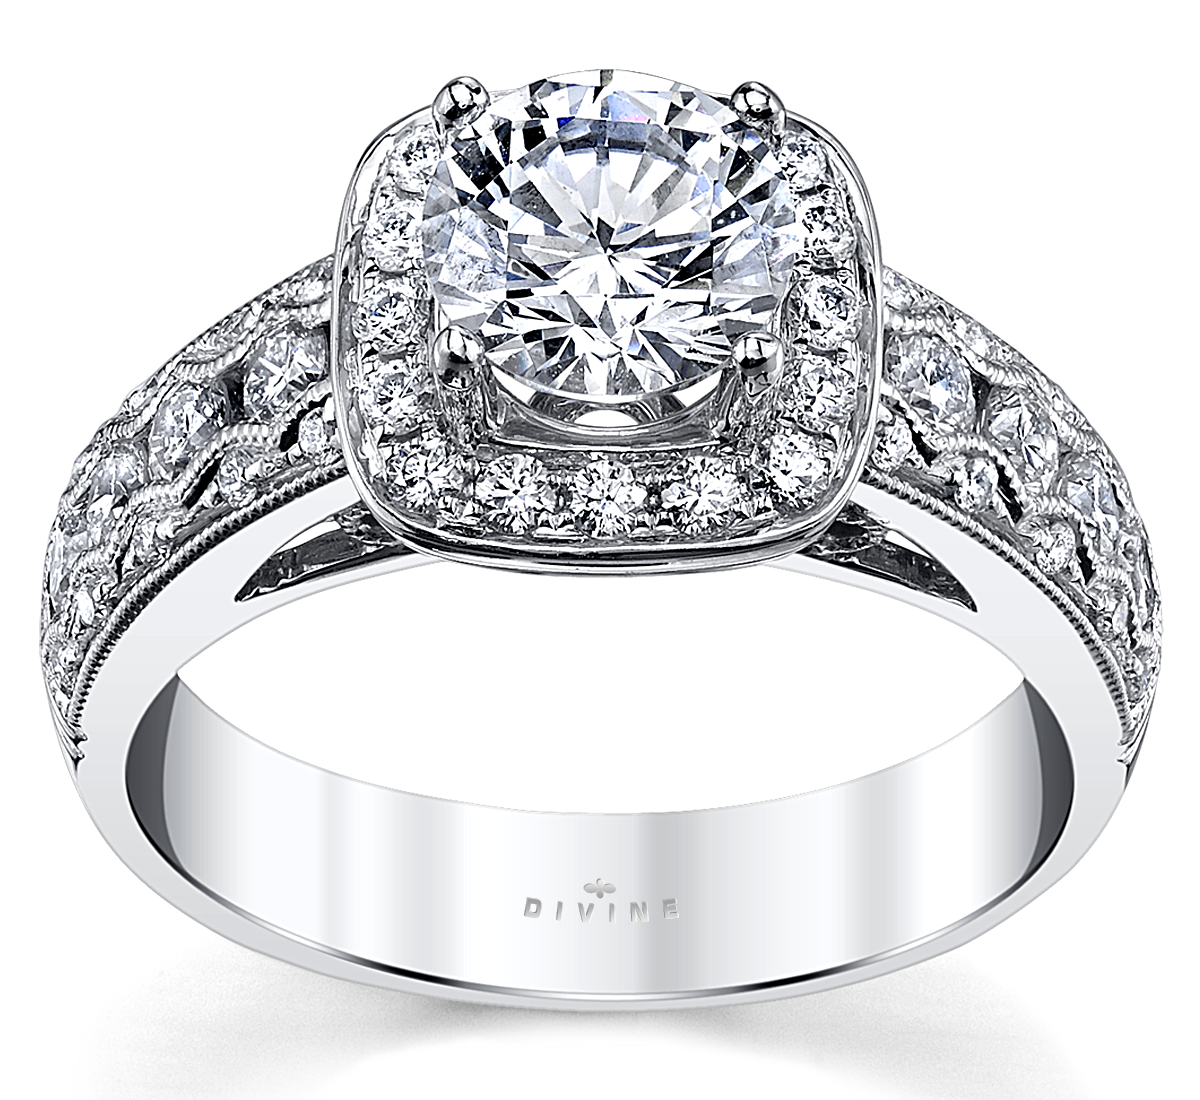 jewellers congers ring product engagement dimond diamond estate rings solitaire